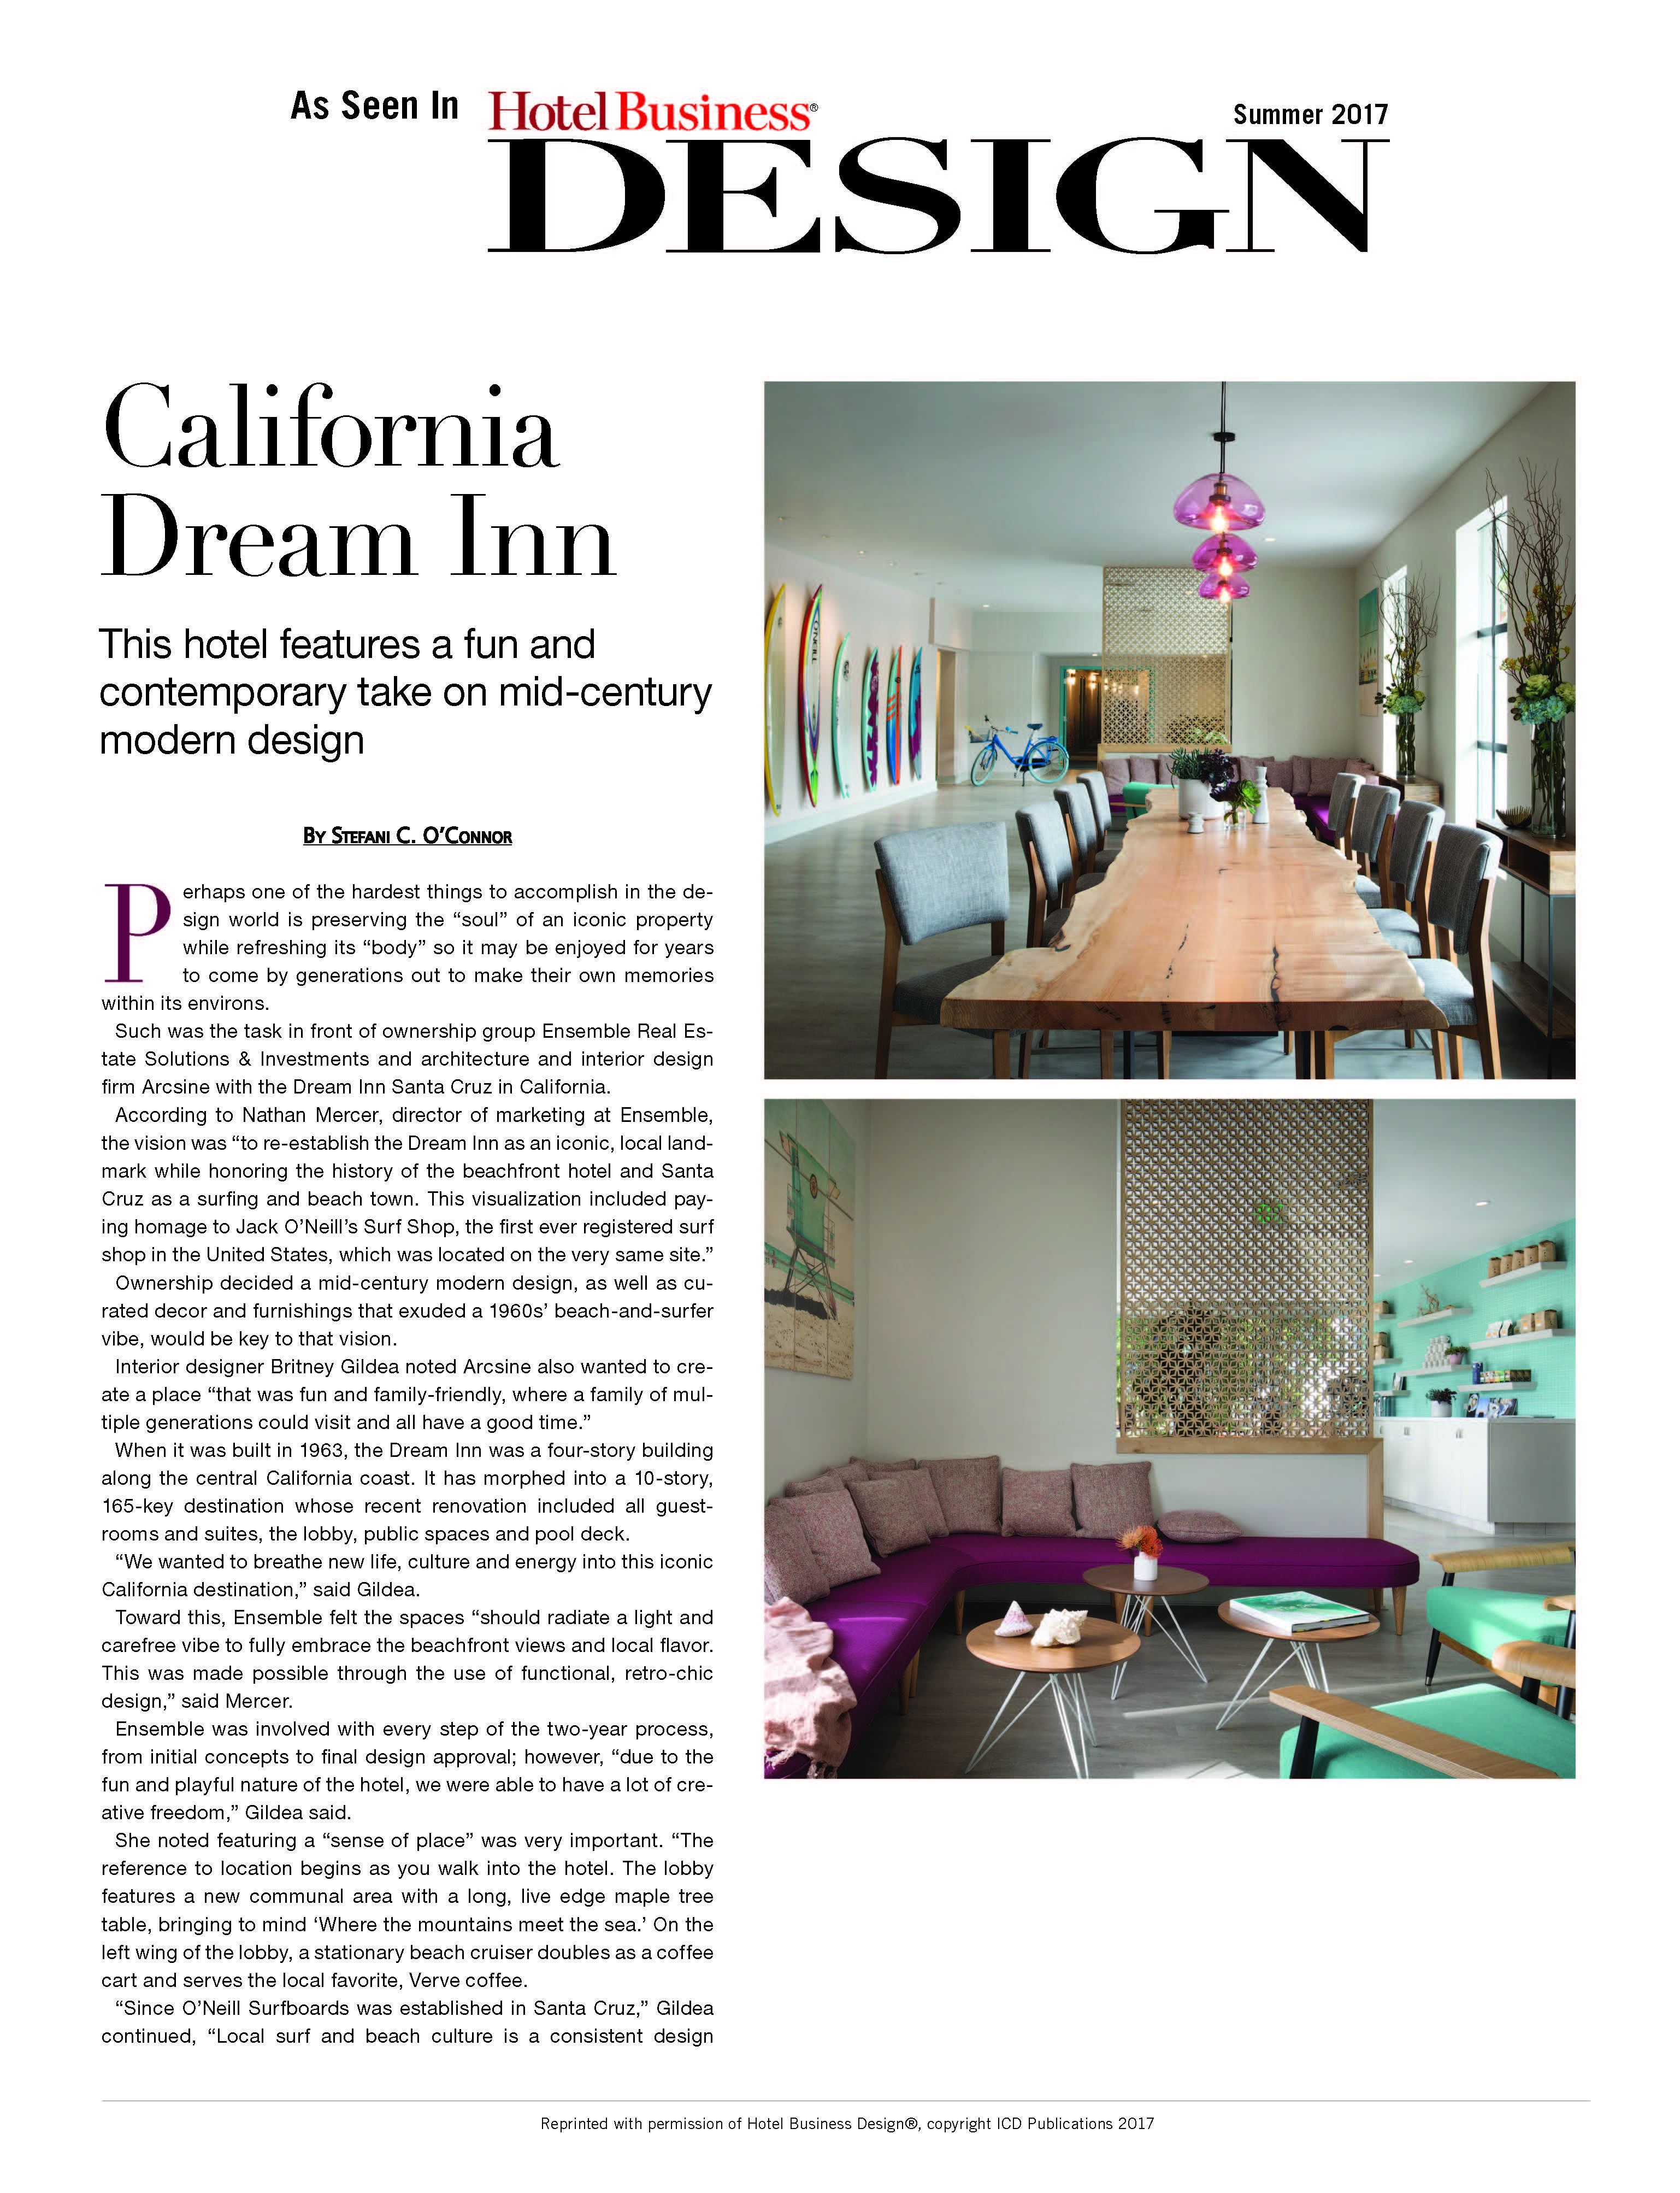 Dream Inn Hotel Business Design Page 1